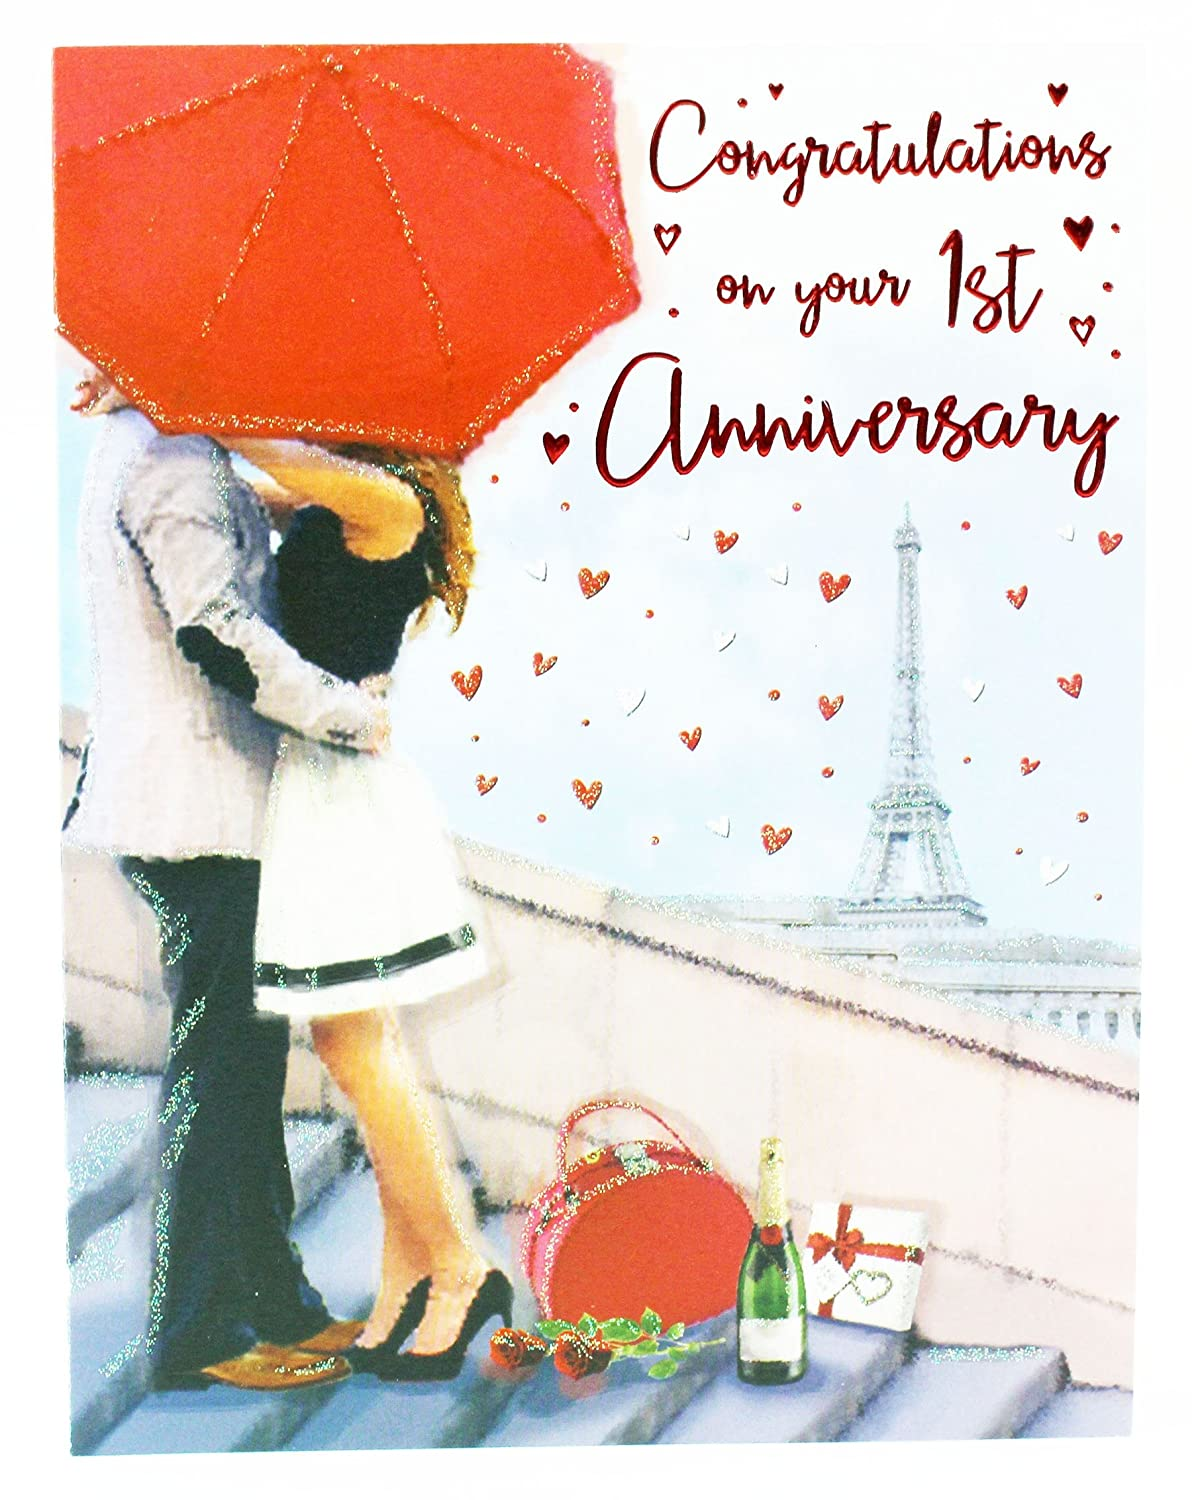 1st Wedding Anniversary Greeting Card To Couple Hallmark Paper First Year Cute Card and Party Store